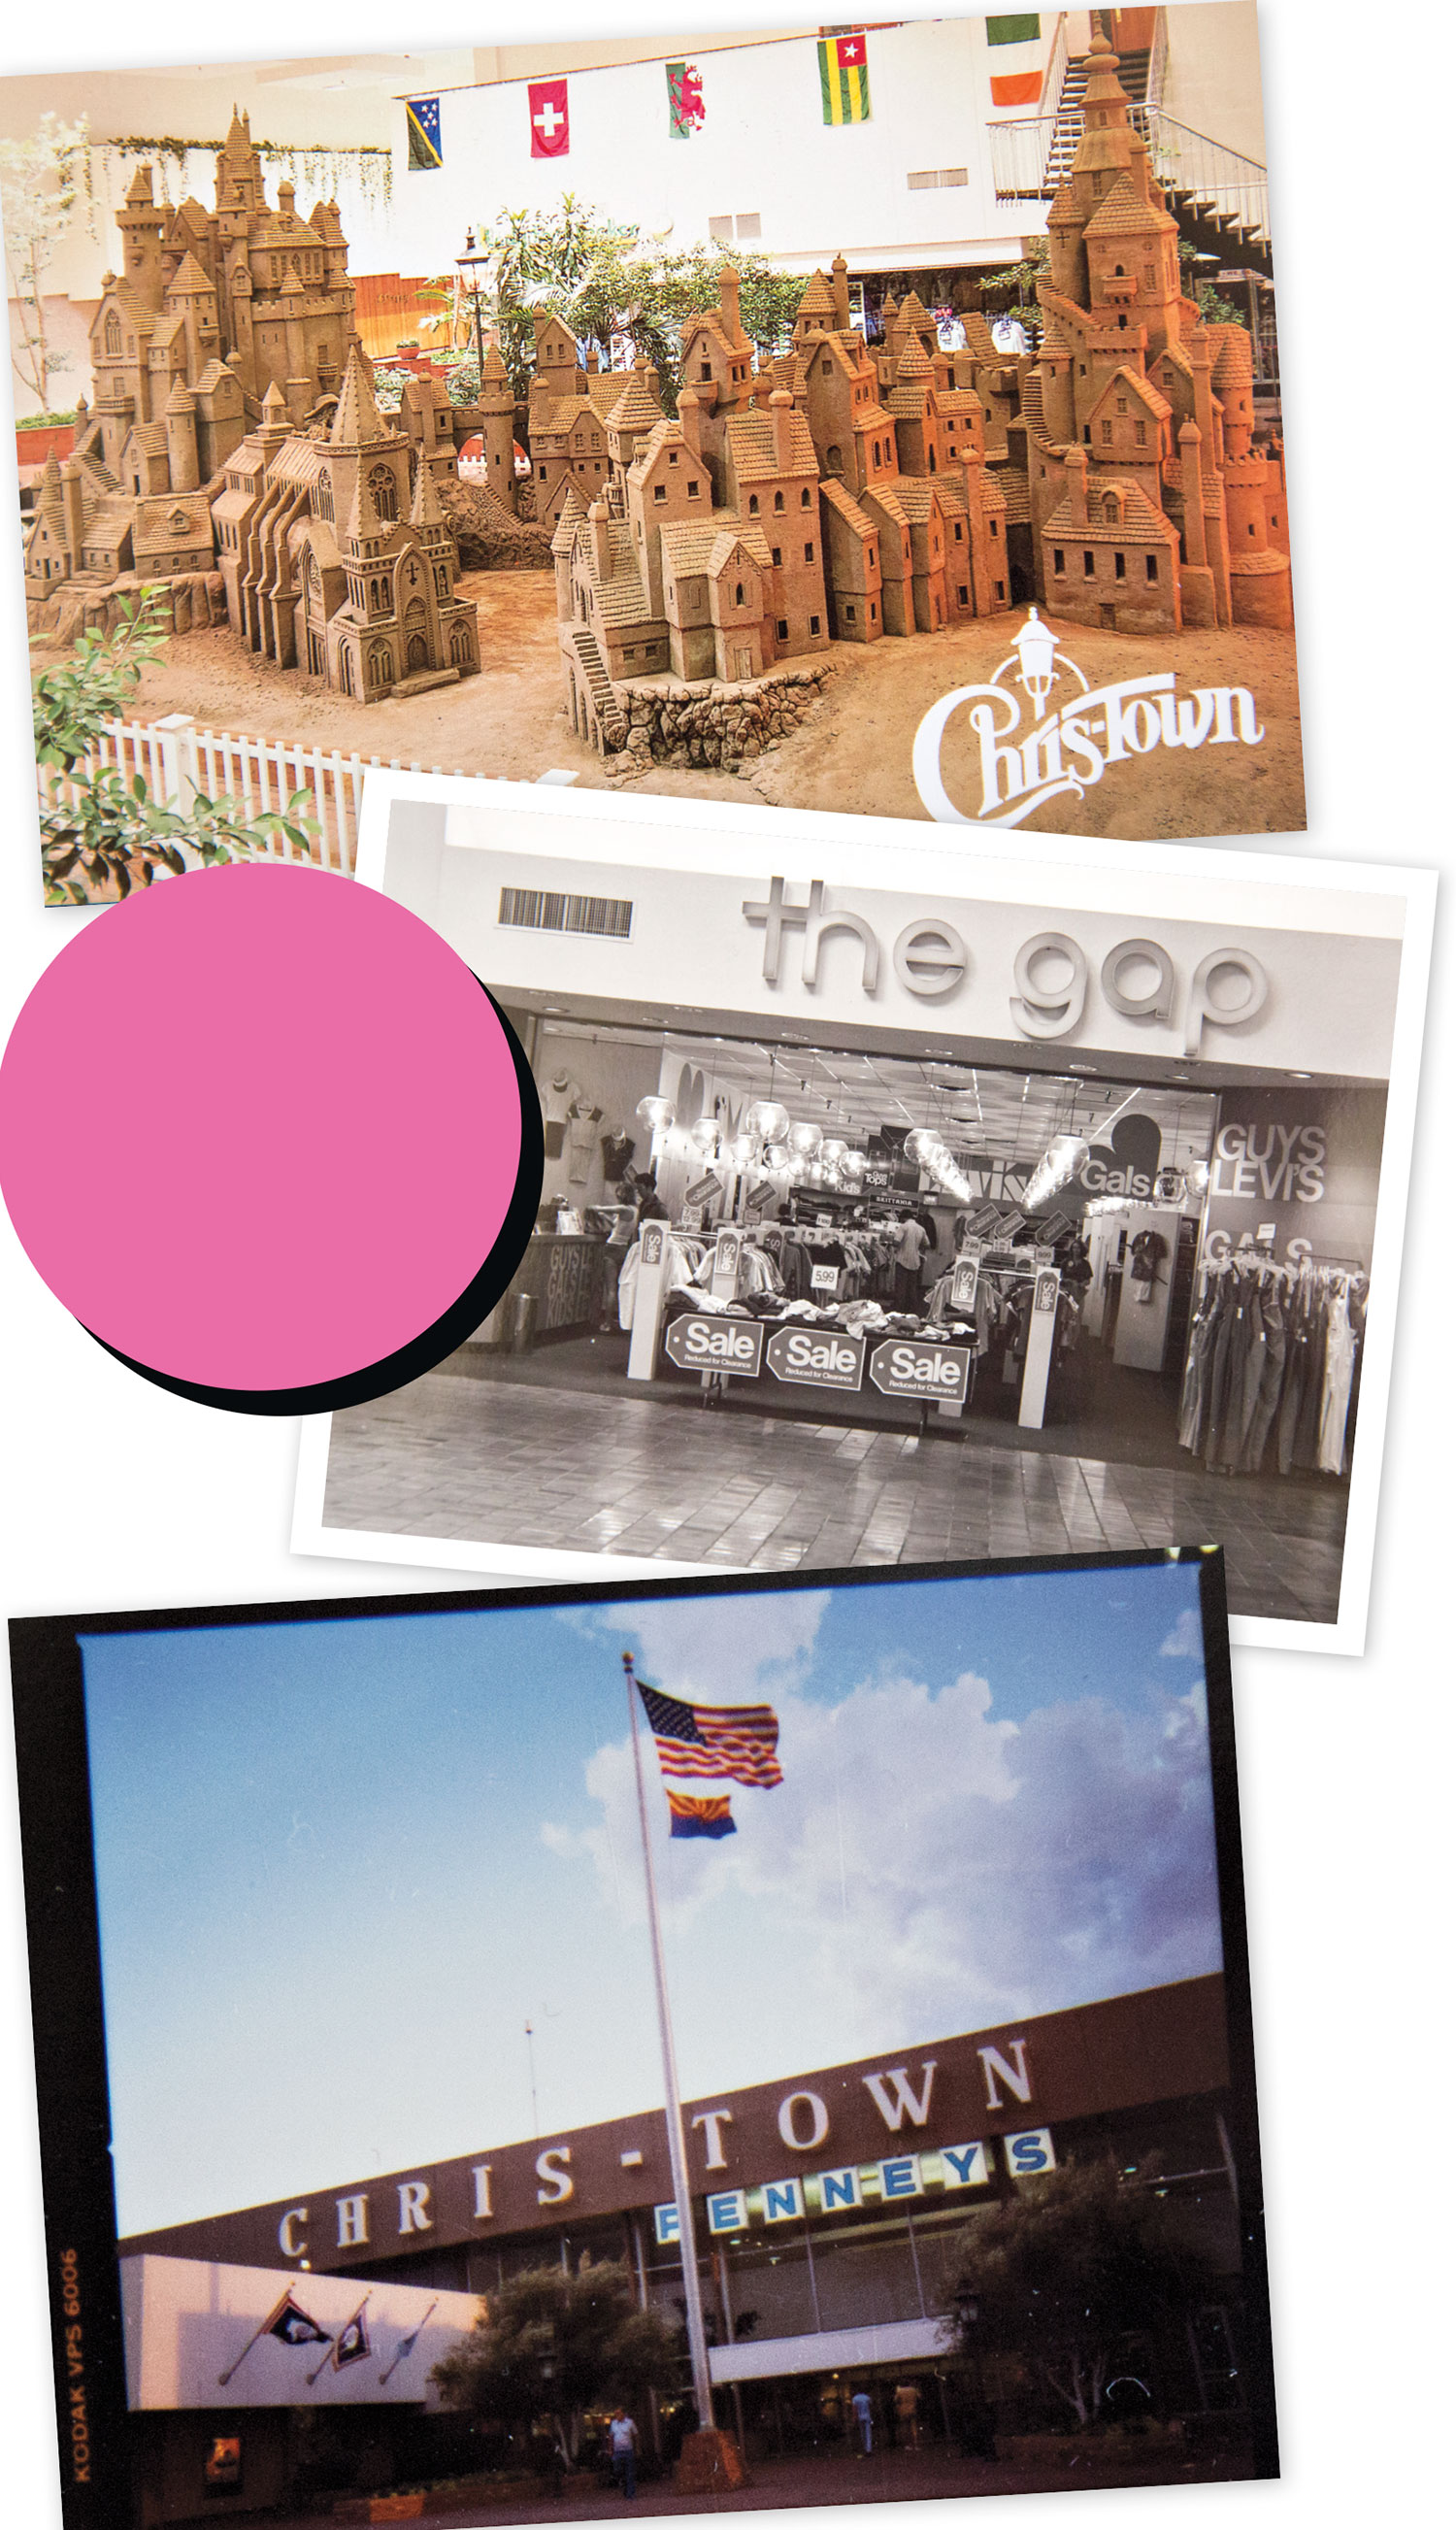 From top: sandcastle display at Chris-Town; mall mainstay The Gap; exterior of Chris-Town Mall, circa mid '80s; Photos courtesy Grossman Company Properties; billandted.org